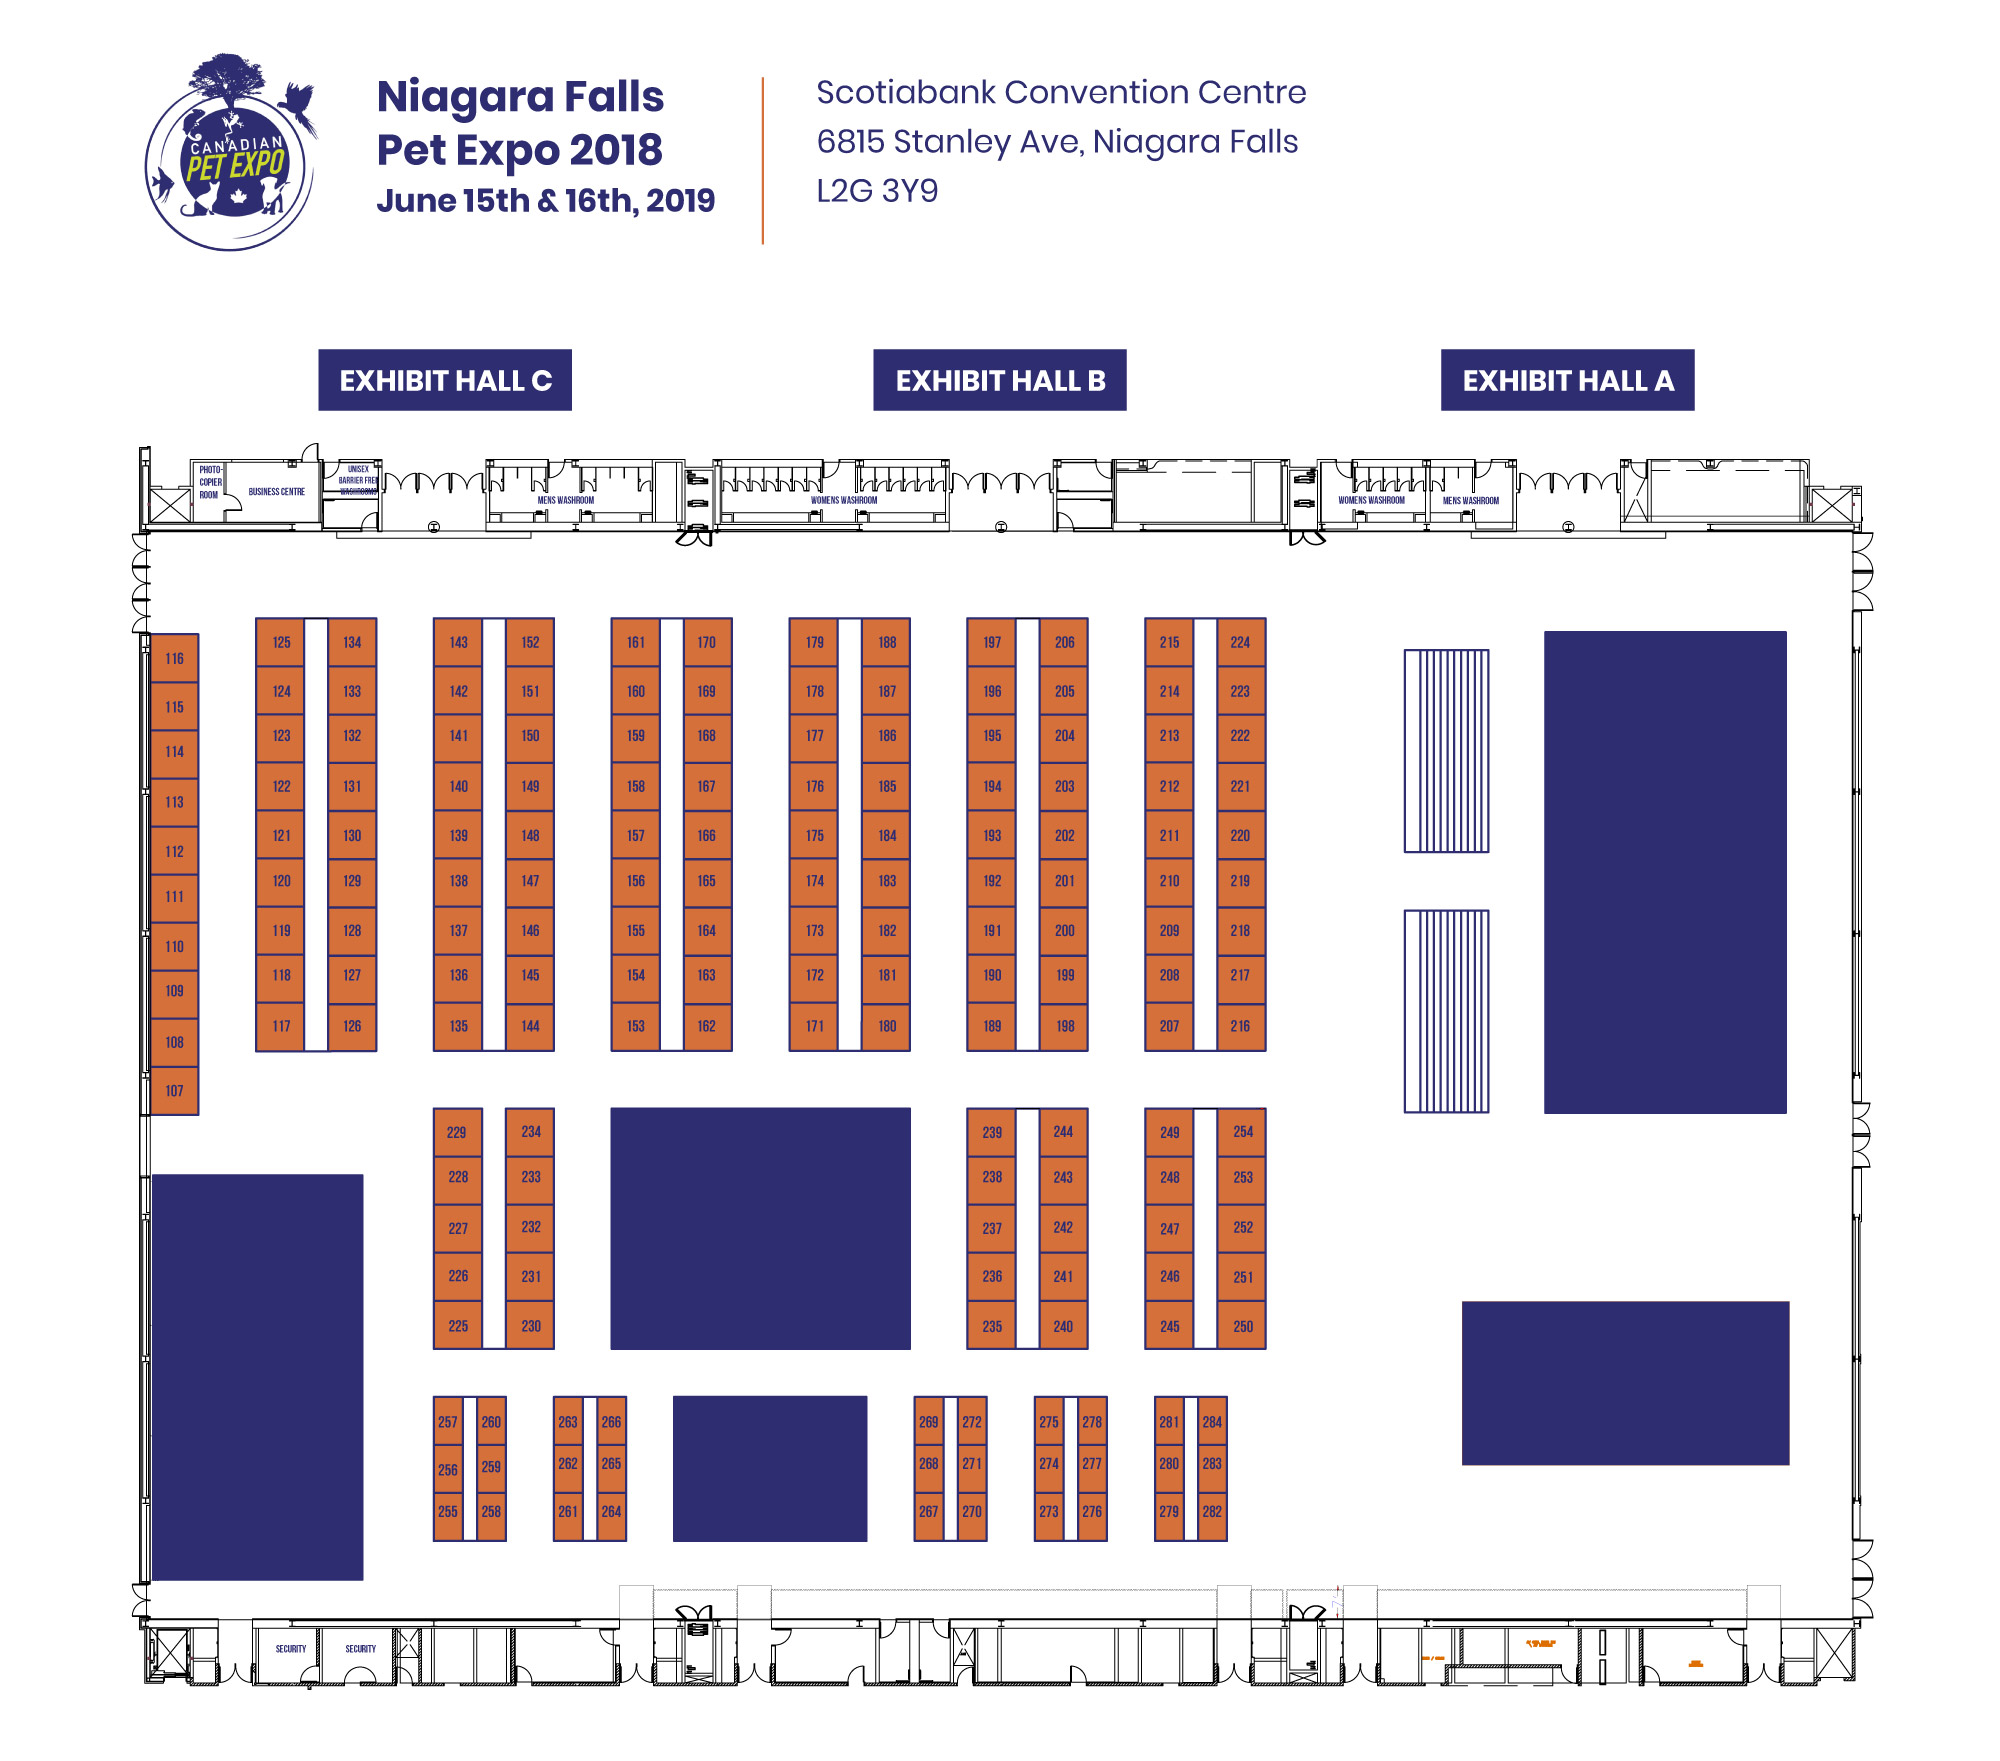 Niagara Falls Pet Expo Floorplan